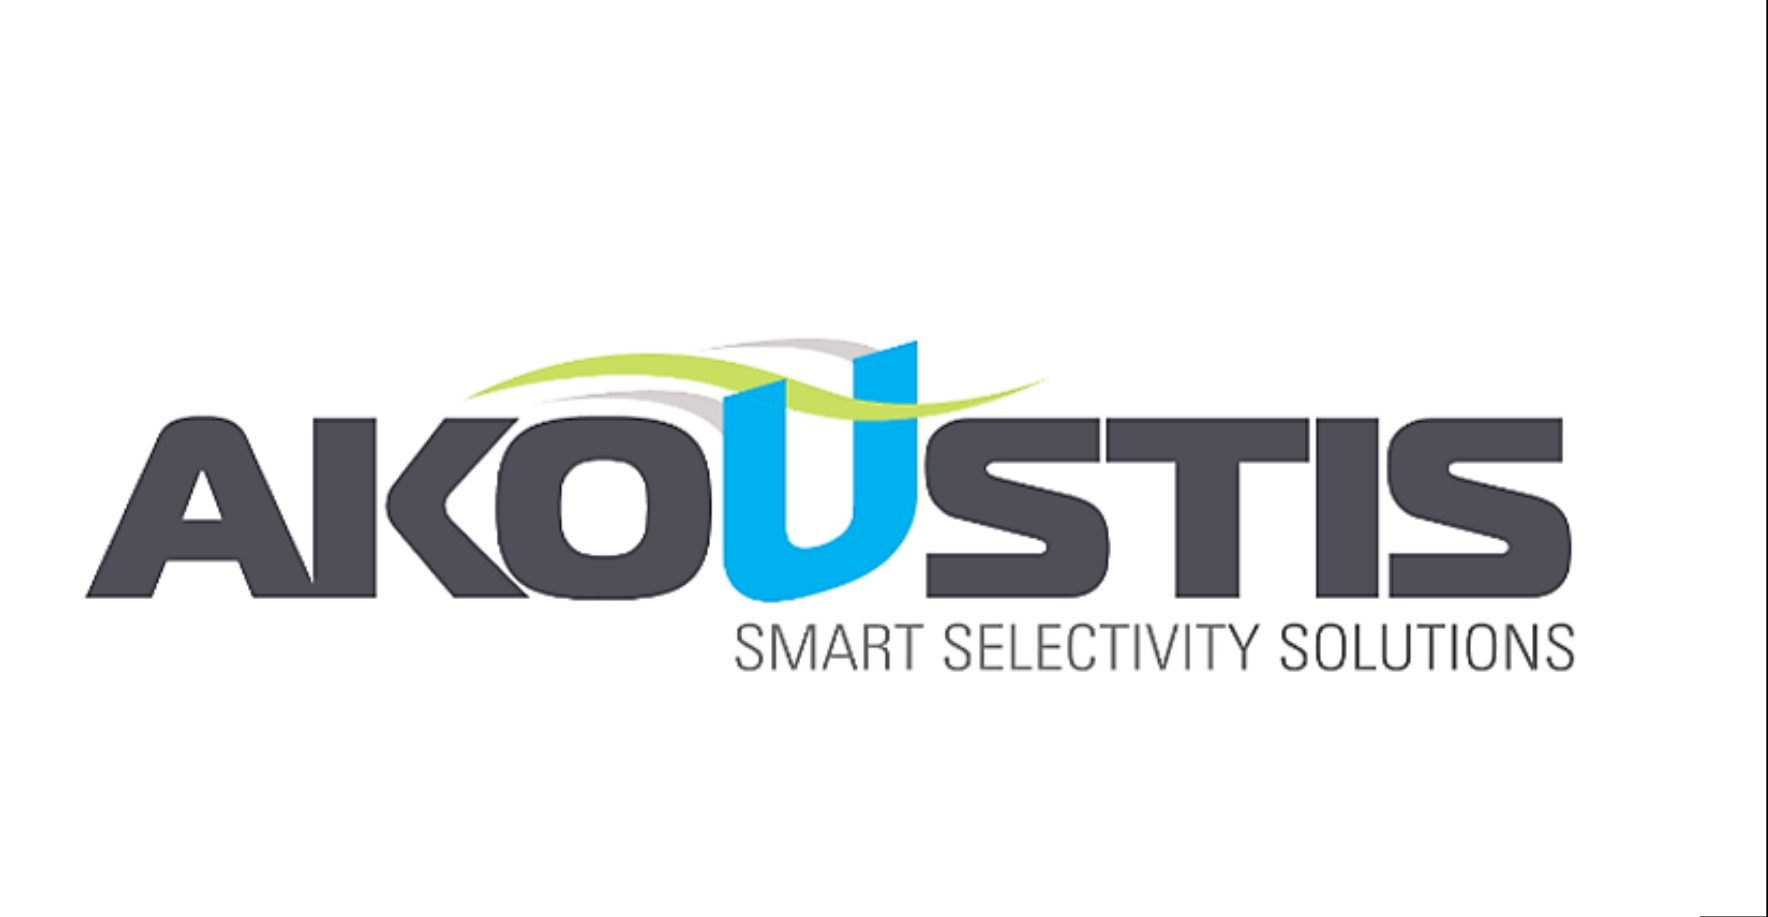 Akoustis Adds Cree Executive, John T. Kurtzweil, to its Board of Directors